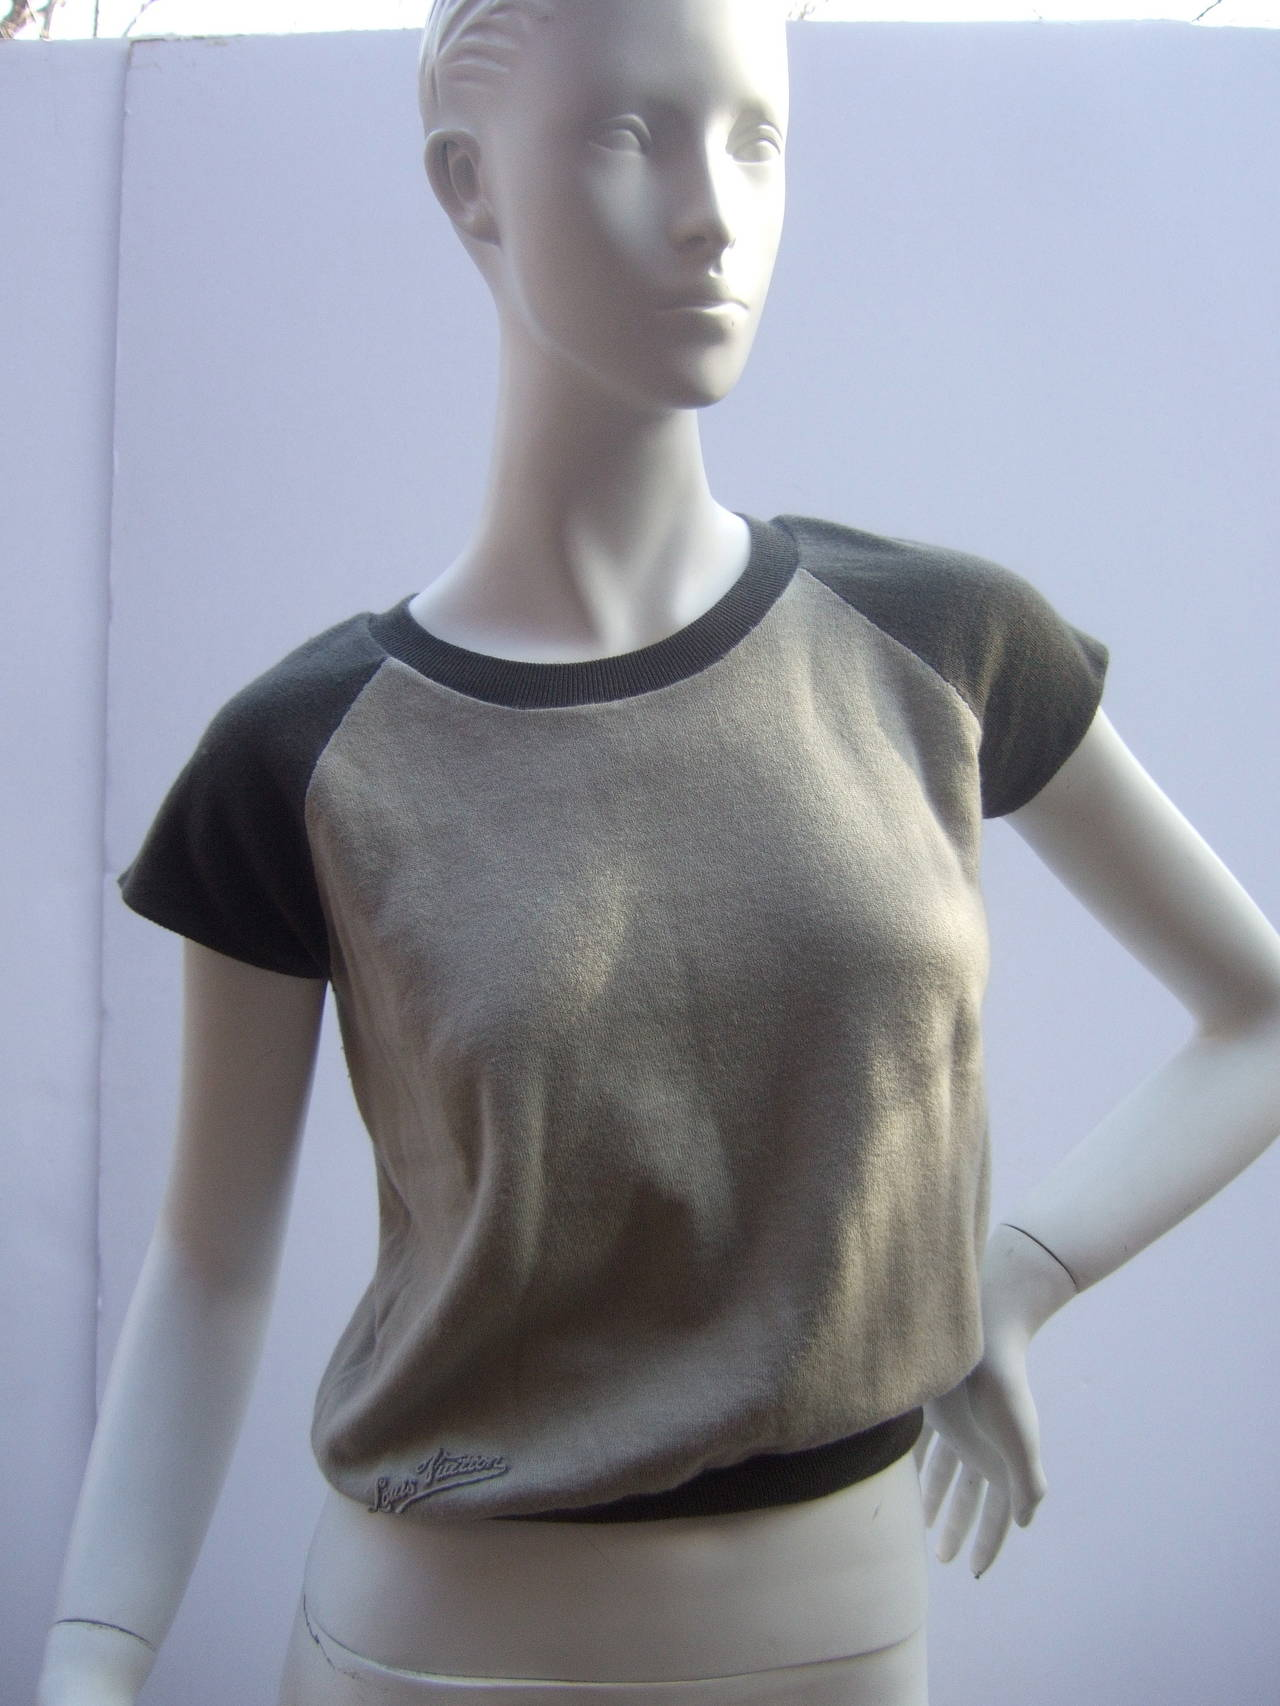 Louis Vuitton Cashmere & Cotton Knit Top Made in Italy Size M 2